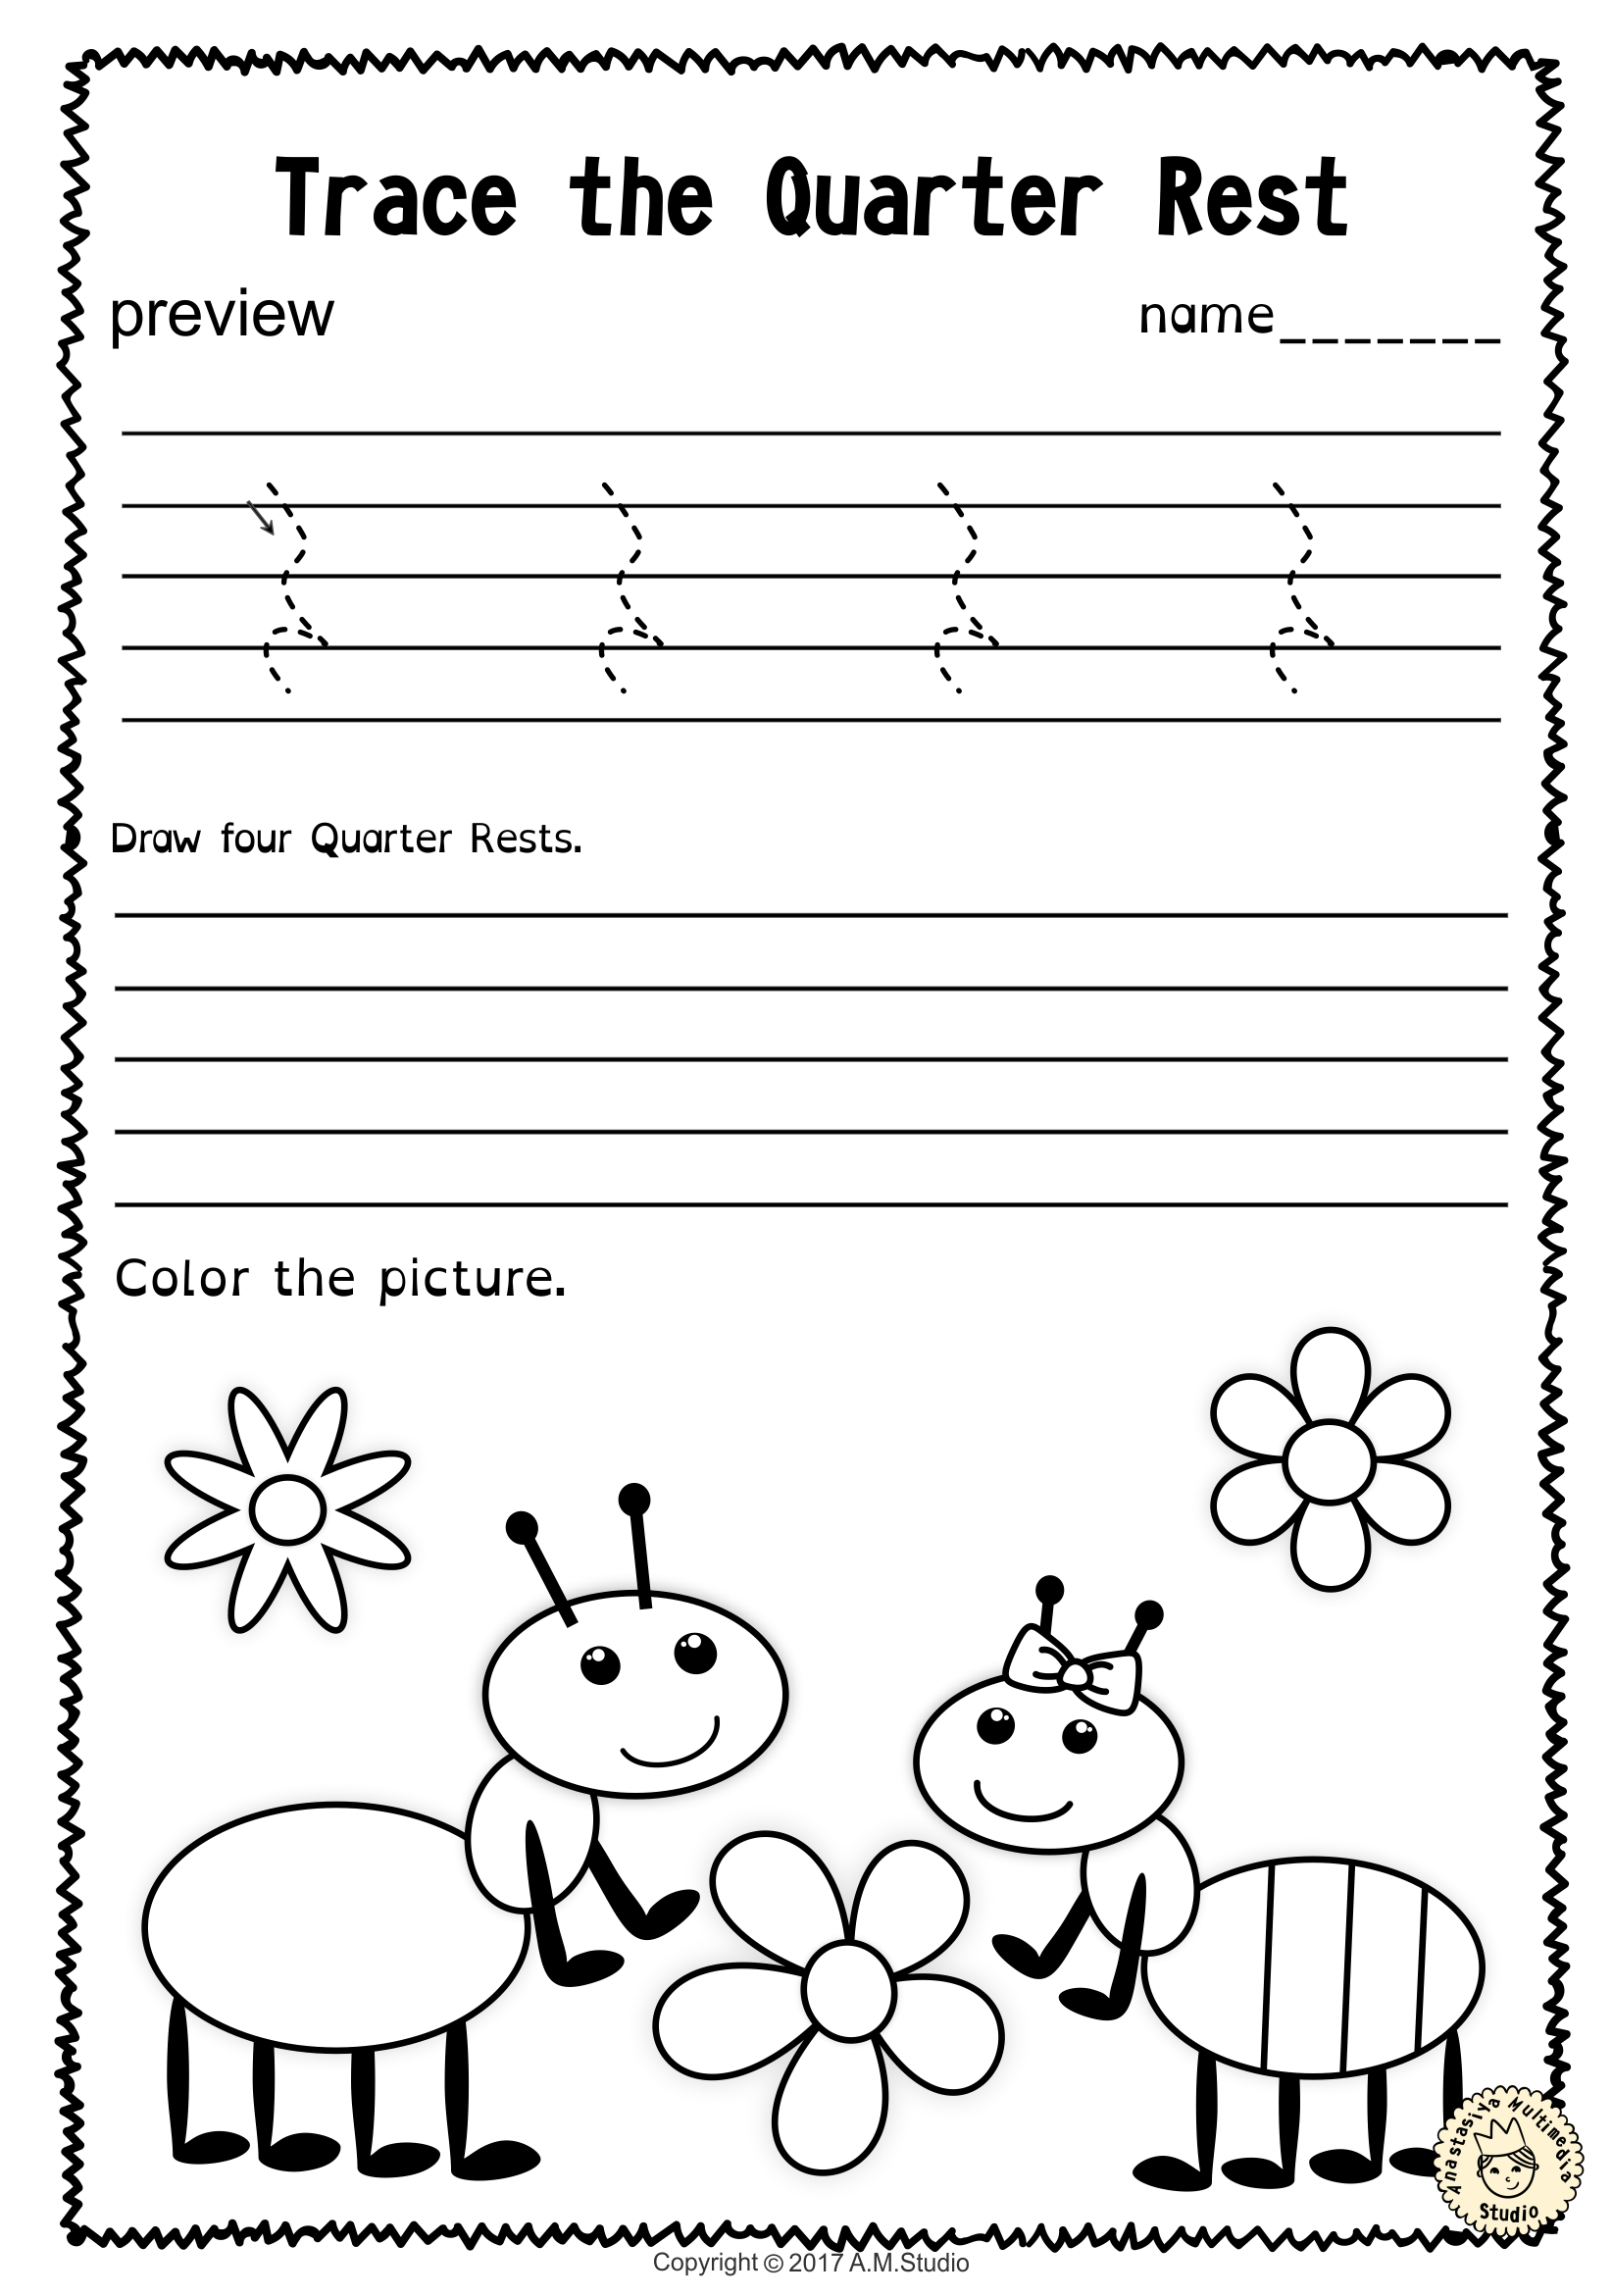 Tracing Music Notes Worksheets For Spring With Images